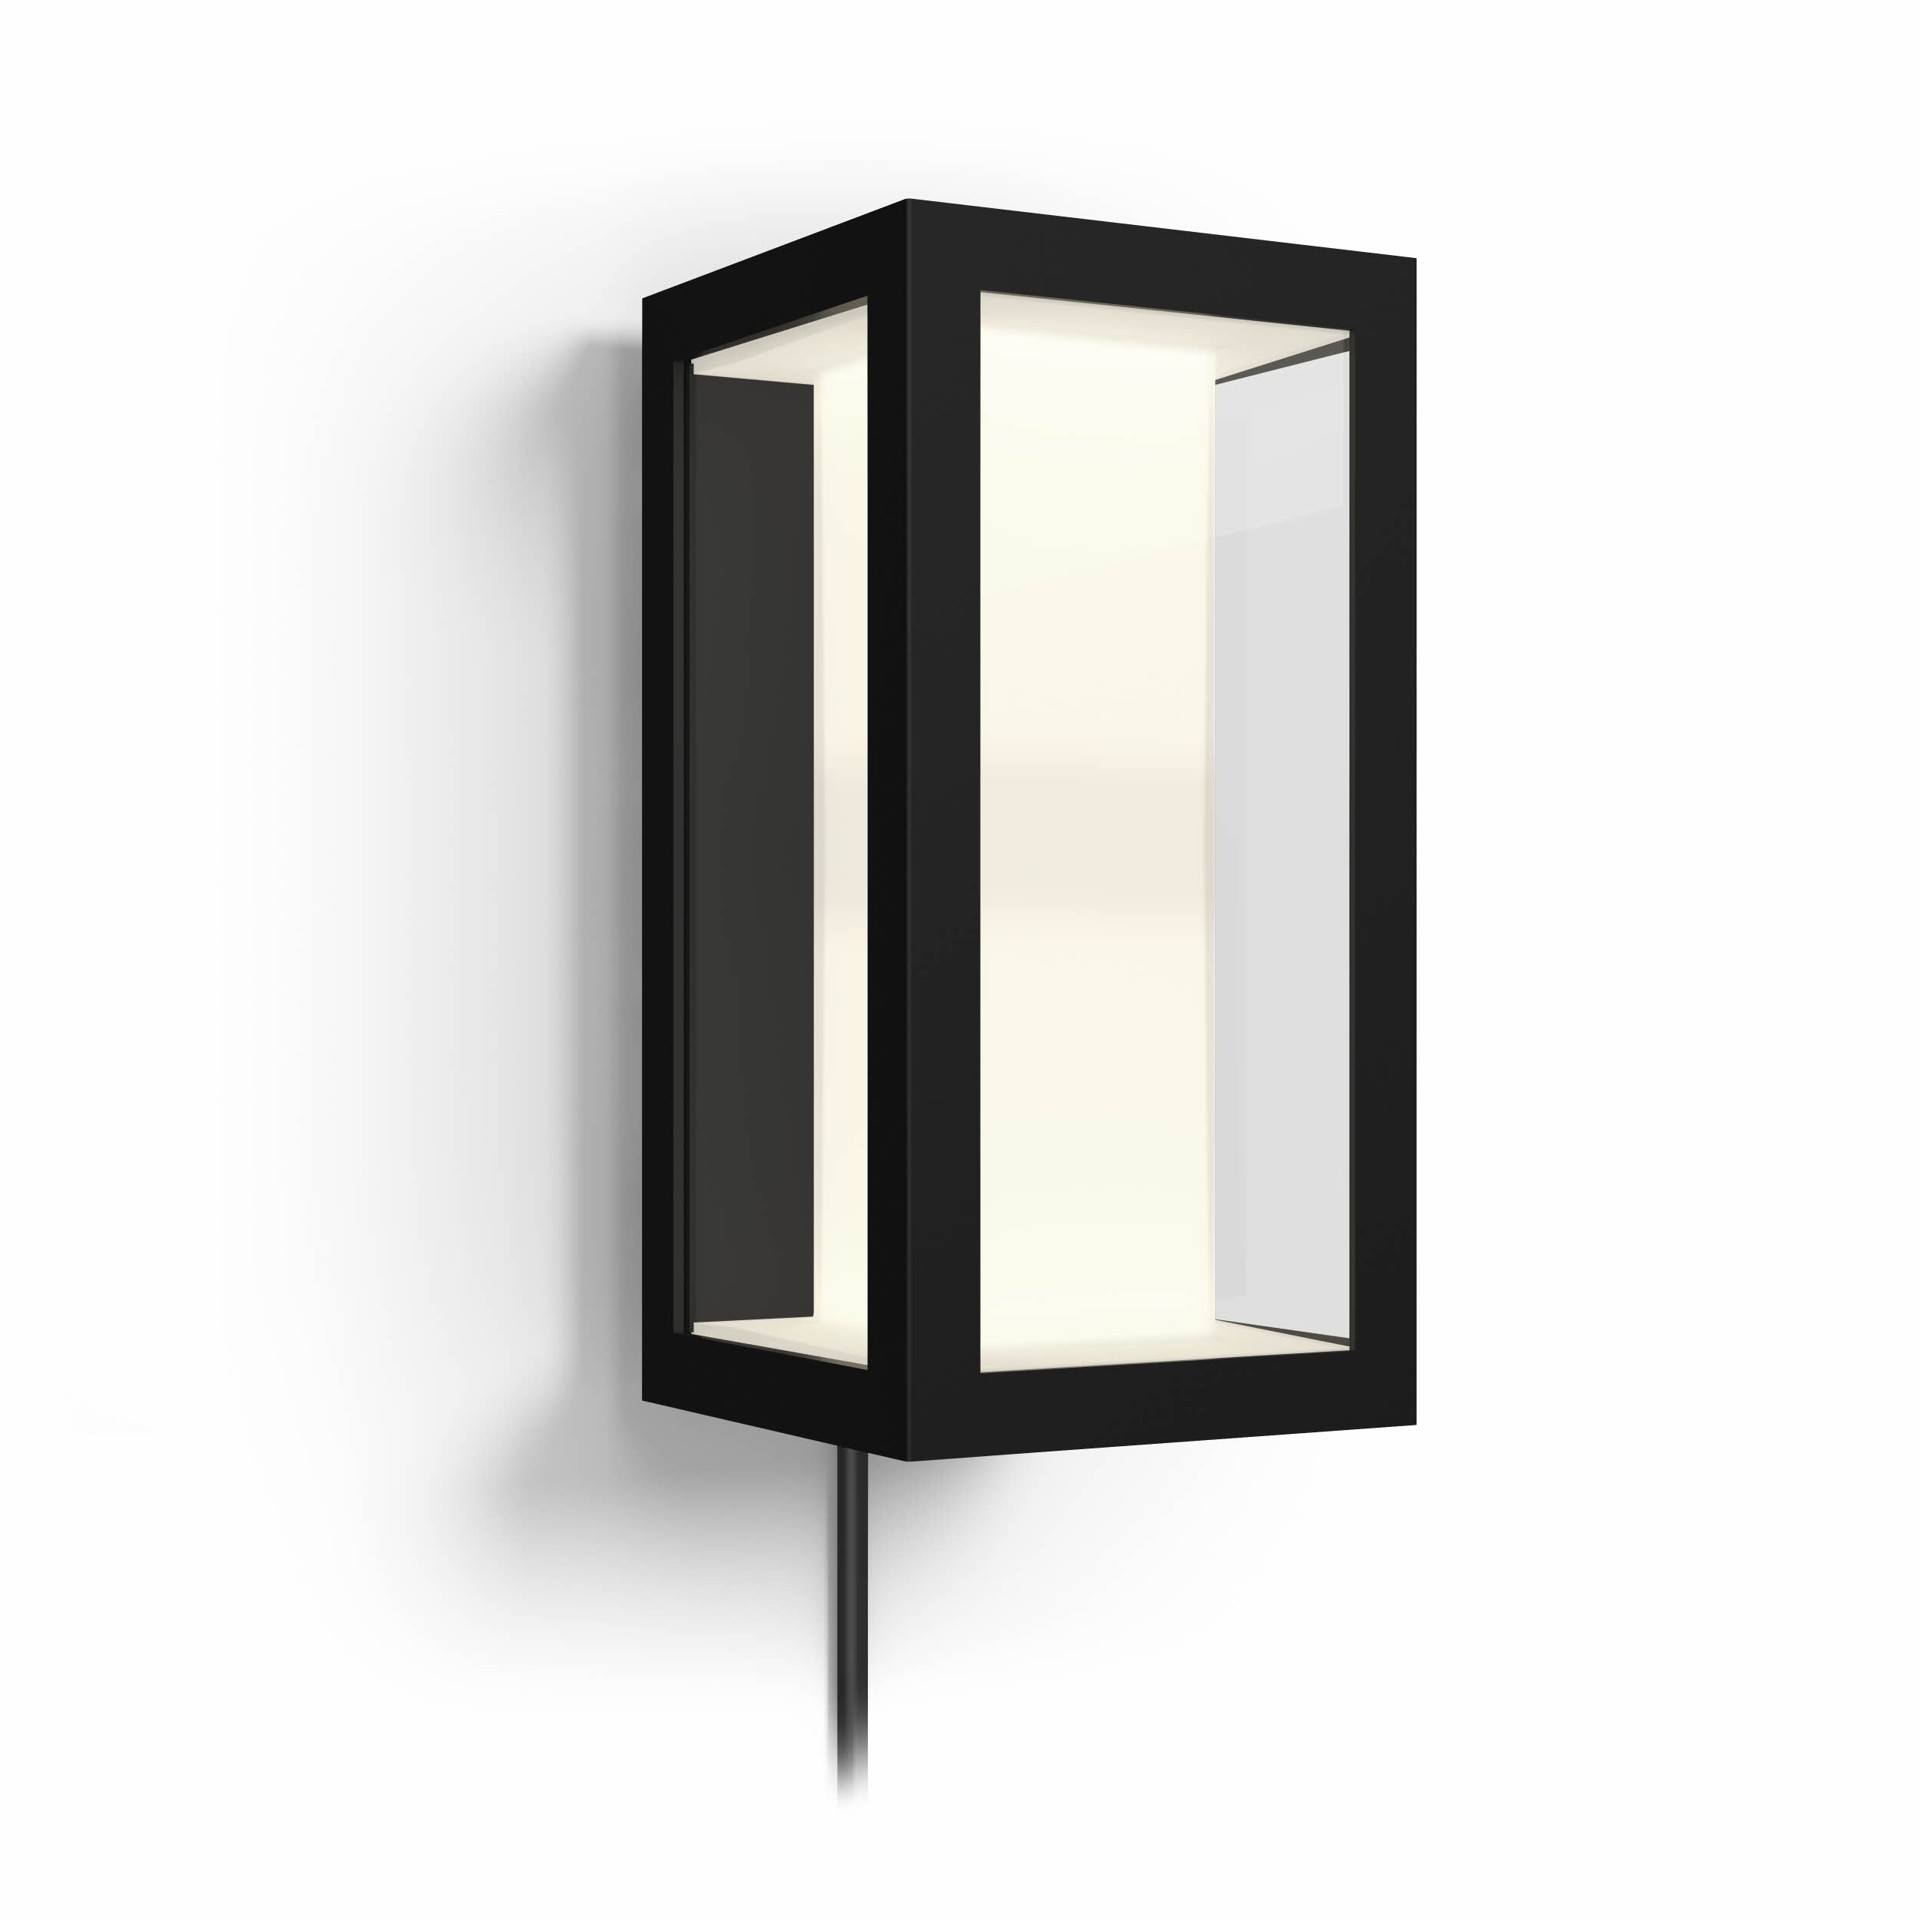 Philips Hue Impress Wall Light Hue Outdoor 24V White & Color Ambiance